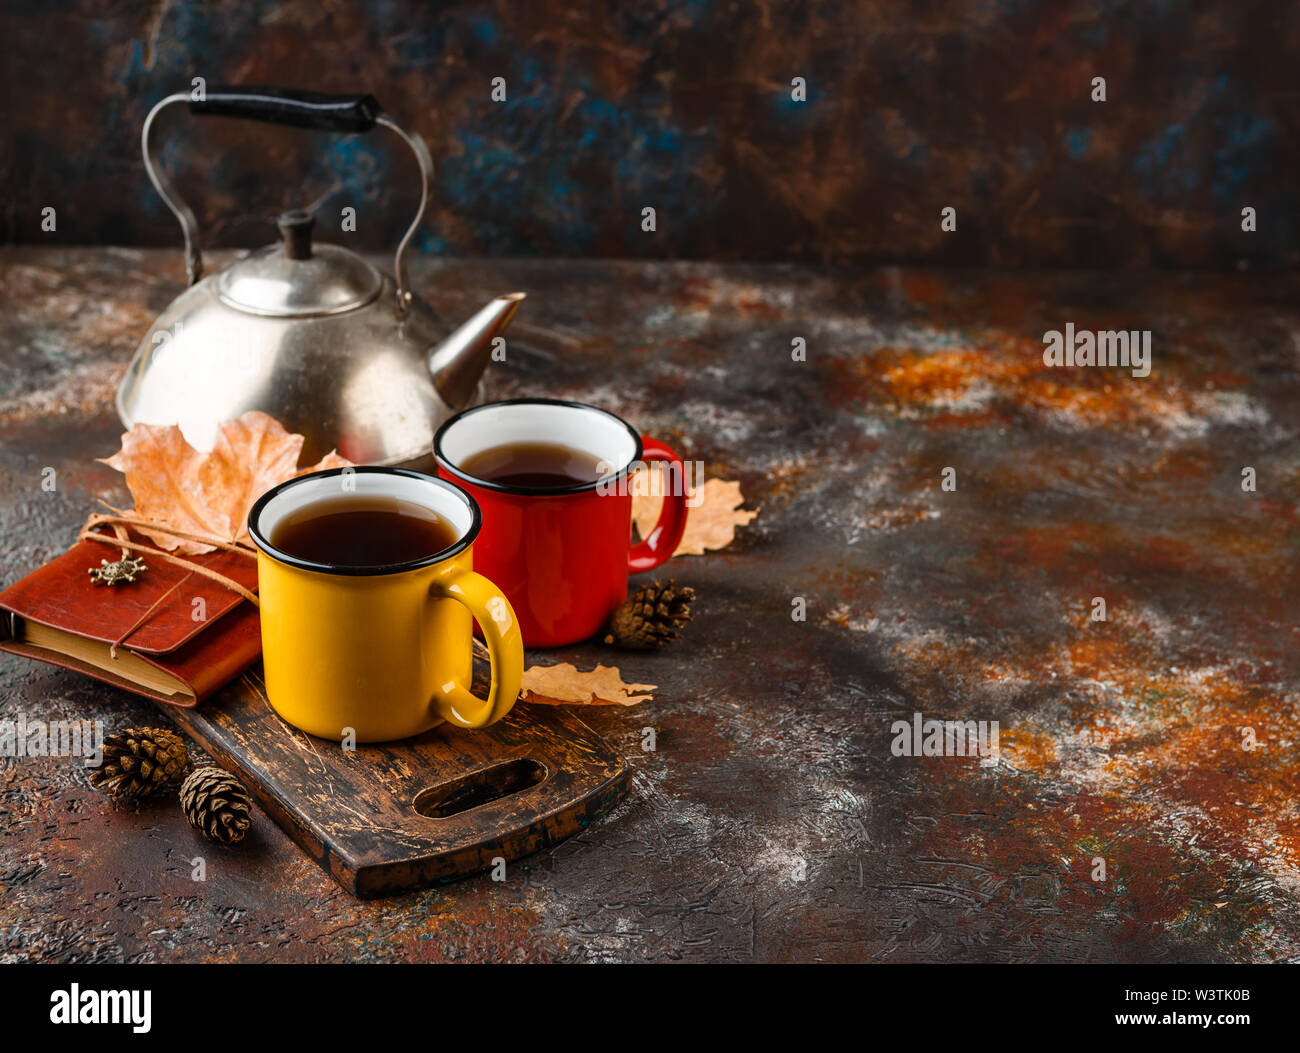 Two colored enamel tea cups, autumn maple leaves and pine cones on a rusty brown background - Stock Image